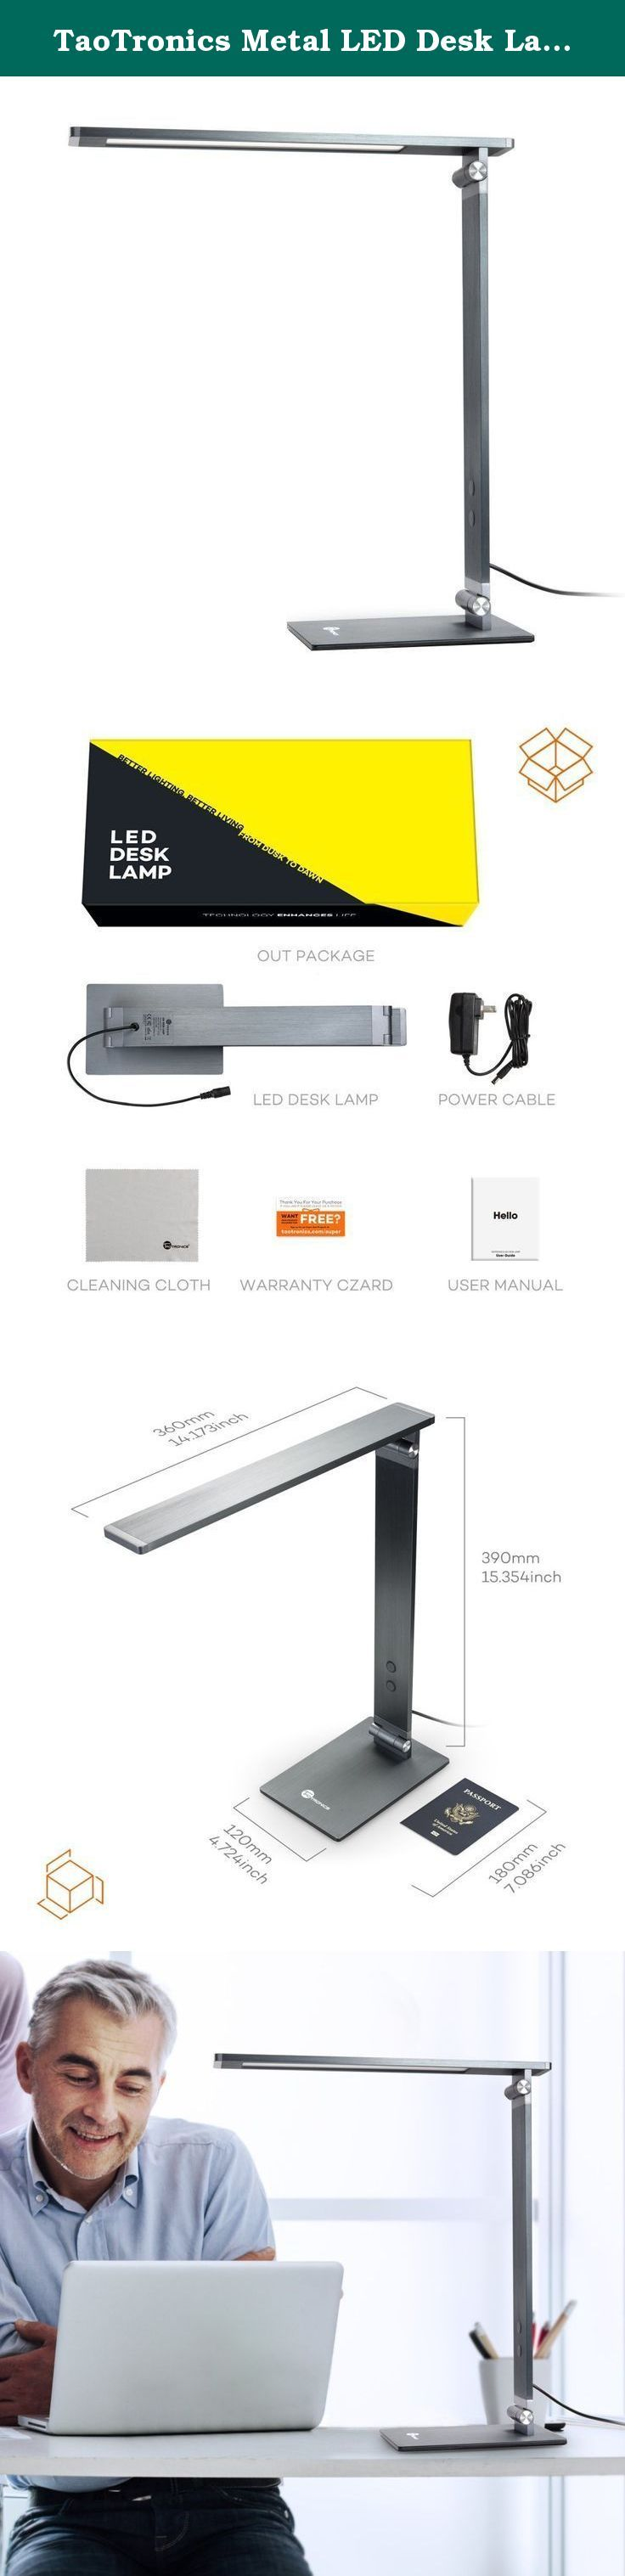 TaoTronics Metal LED Desk Lamp, Table Lamps for Bedrooms Rugged and Durable Metal Body, Superior Desk light for Reading or Task, Touch-Sensitive Control, 4 Light Modes, Glare-Free Desk Light. TaoTronics Metal LED Desk Lamp is made entirely of metal, featuring a minimalistic design at no expense of durability. Premium feel. Everlasting toughness. Let yourself have the best of both. Do not squeeze your tired eyes at the desk light after reading just a few pages anymore. 6000K, 5000K, 4000K...